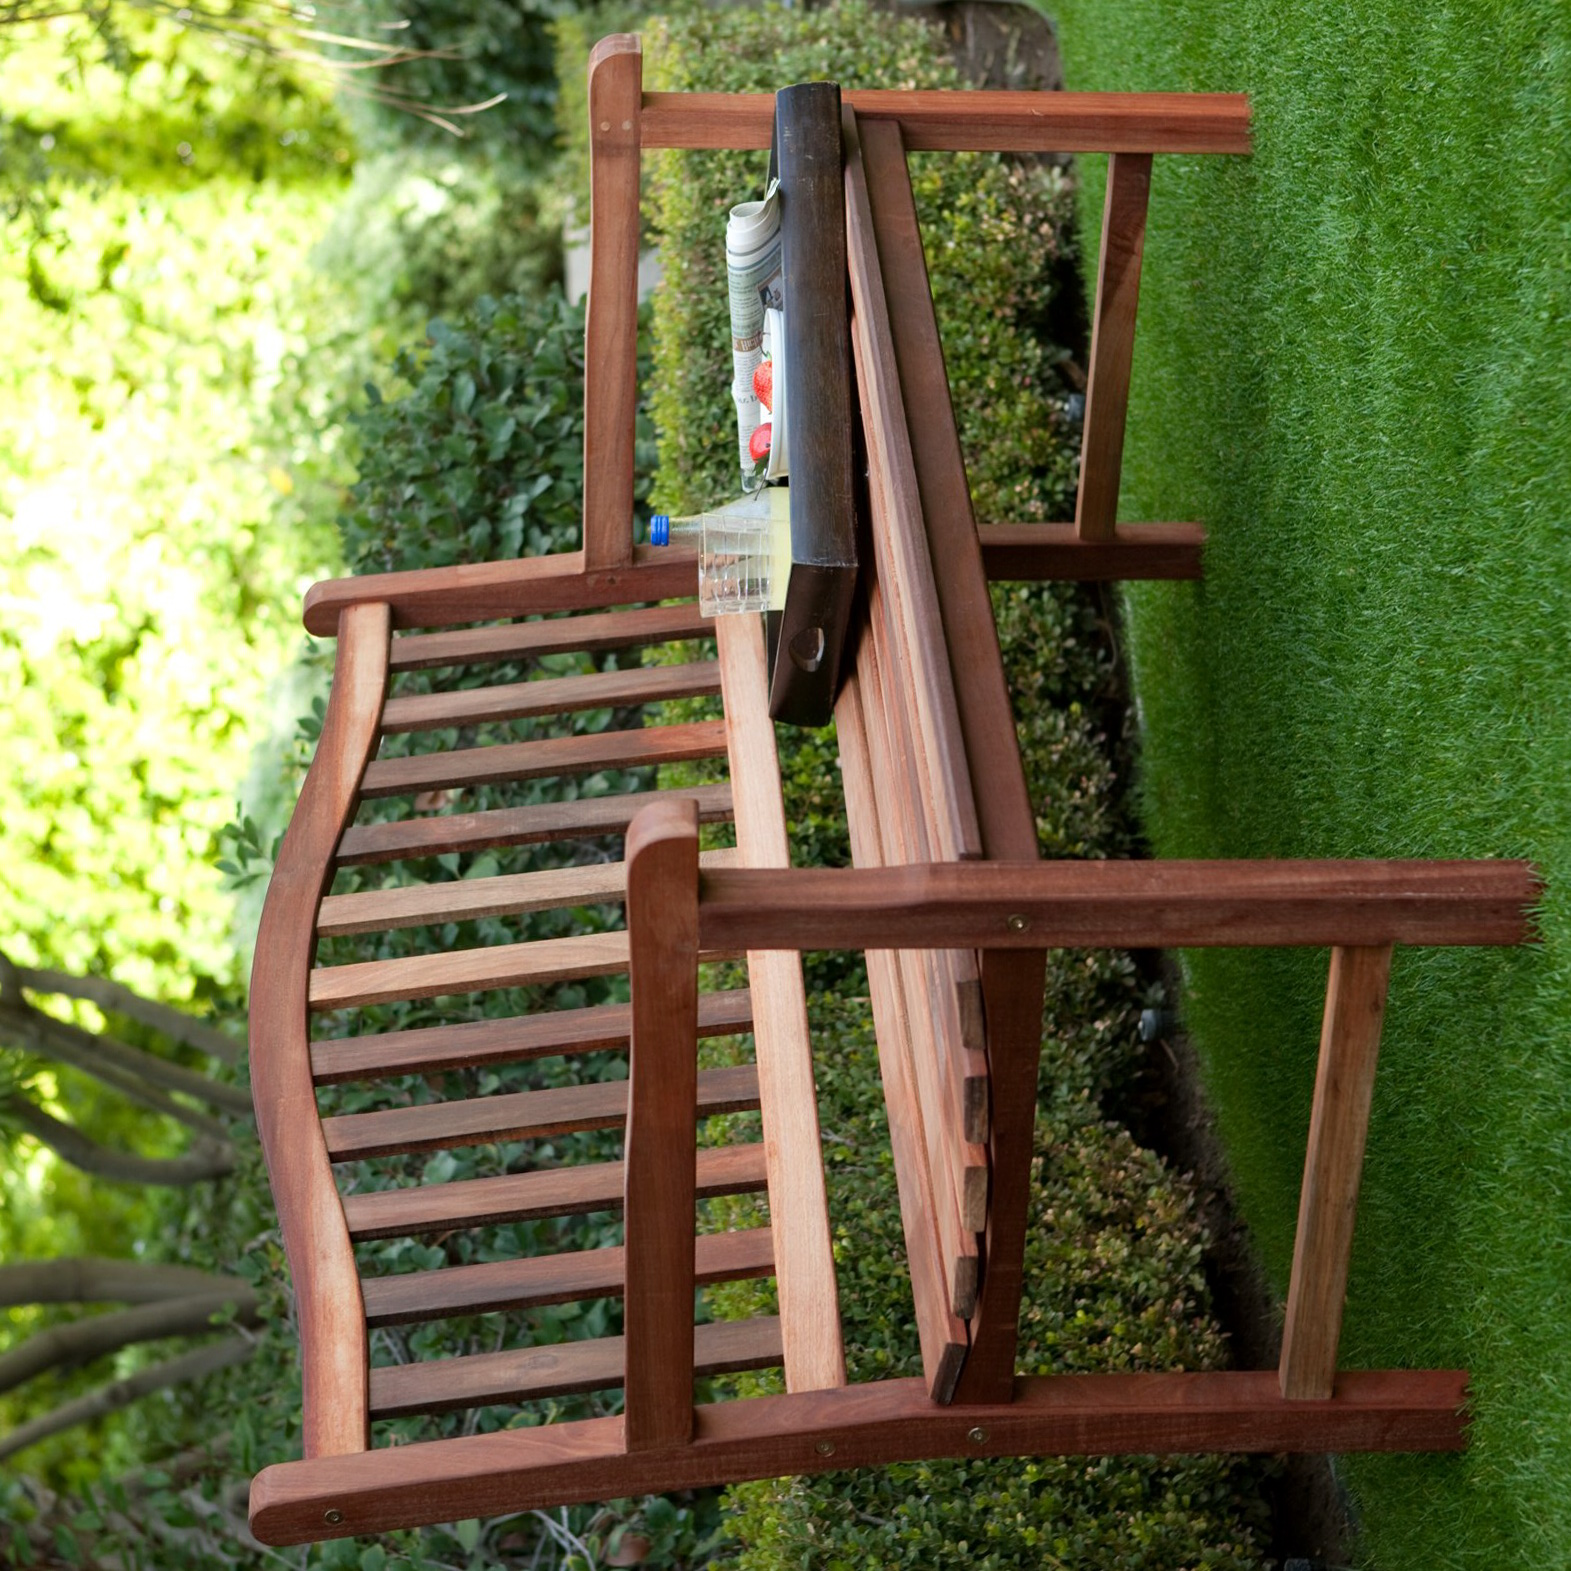 Park Benches For Sale Auckland Home Design Ideas